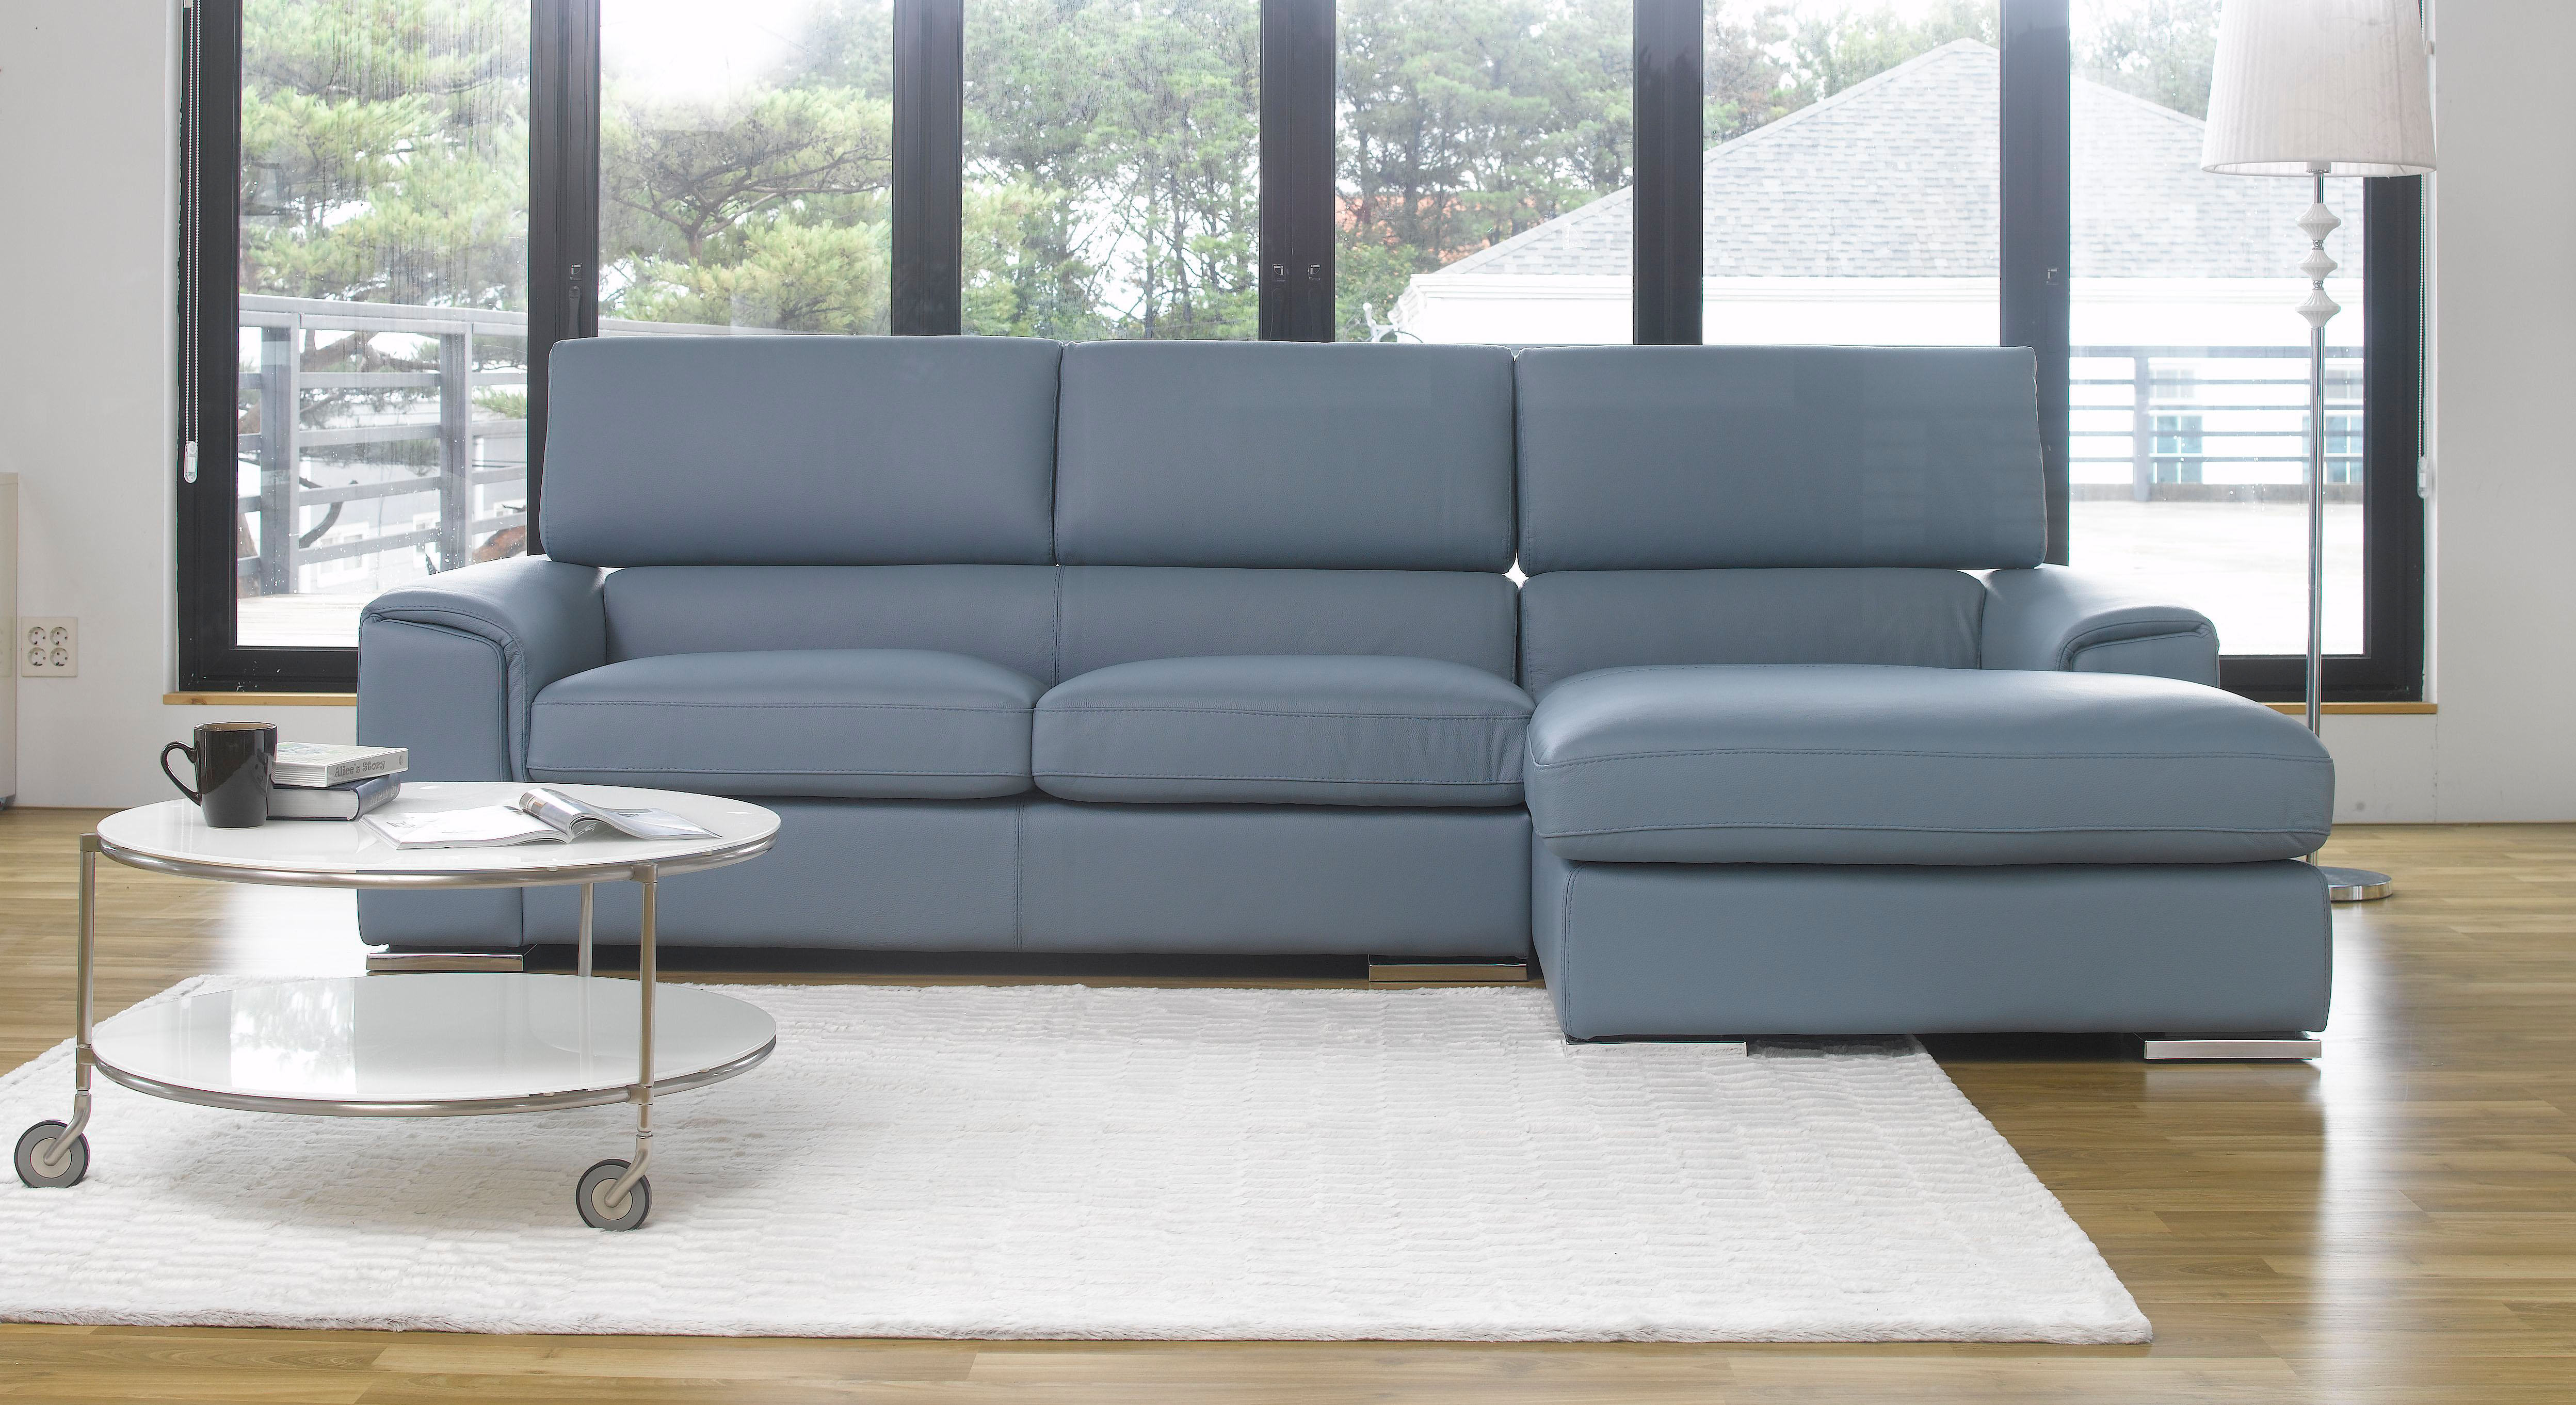 Adjustable Advanced Italian Top Grain Leather Sectional